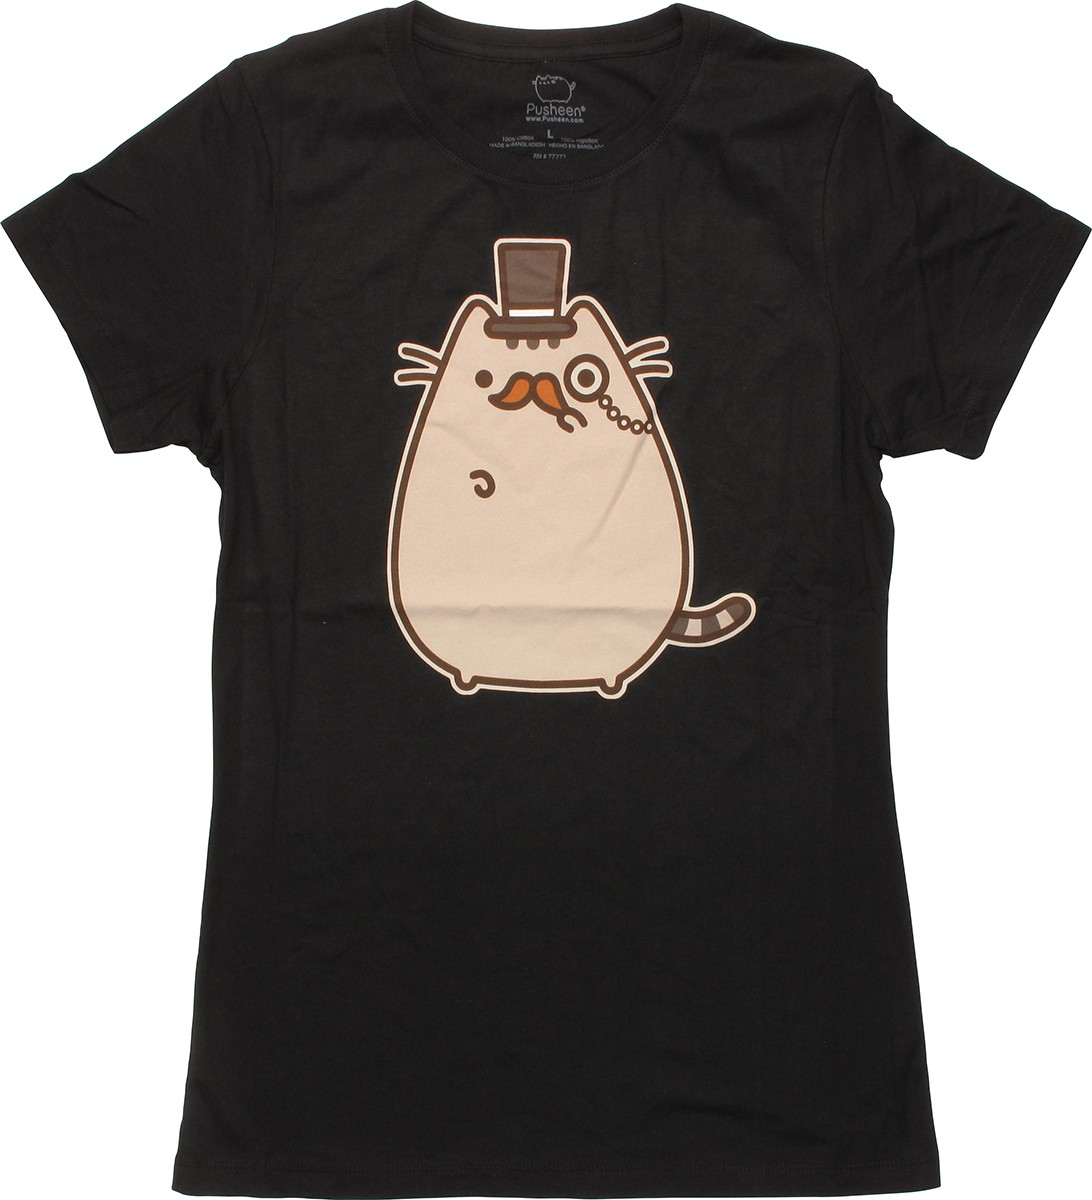 Great Prices and Choice of Scootin Pusheen The Cat T Shirt Today To Bring A High End Feel To Your Home!, Complete the rest of the space with beautiful Scootin Pusheen The Cat T Shirt, You will get more details about Scootin Pusheen The Cat T Shirt, Browse a wide.